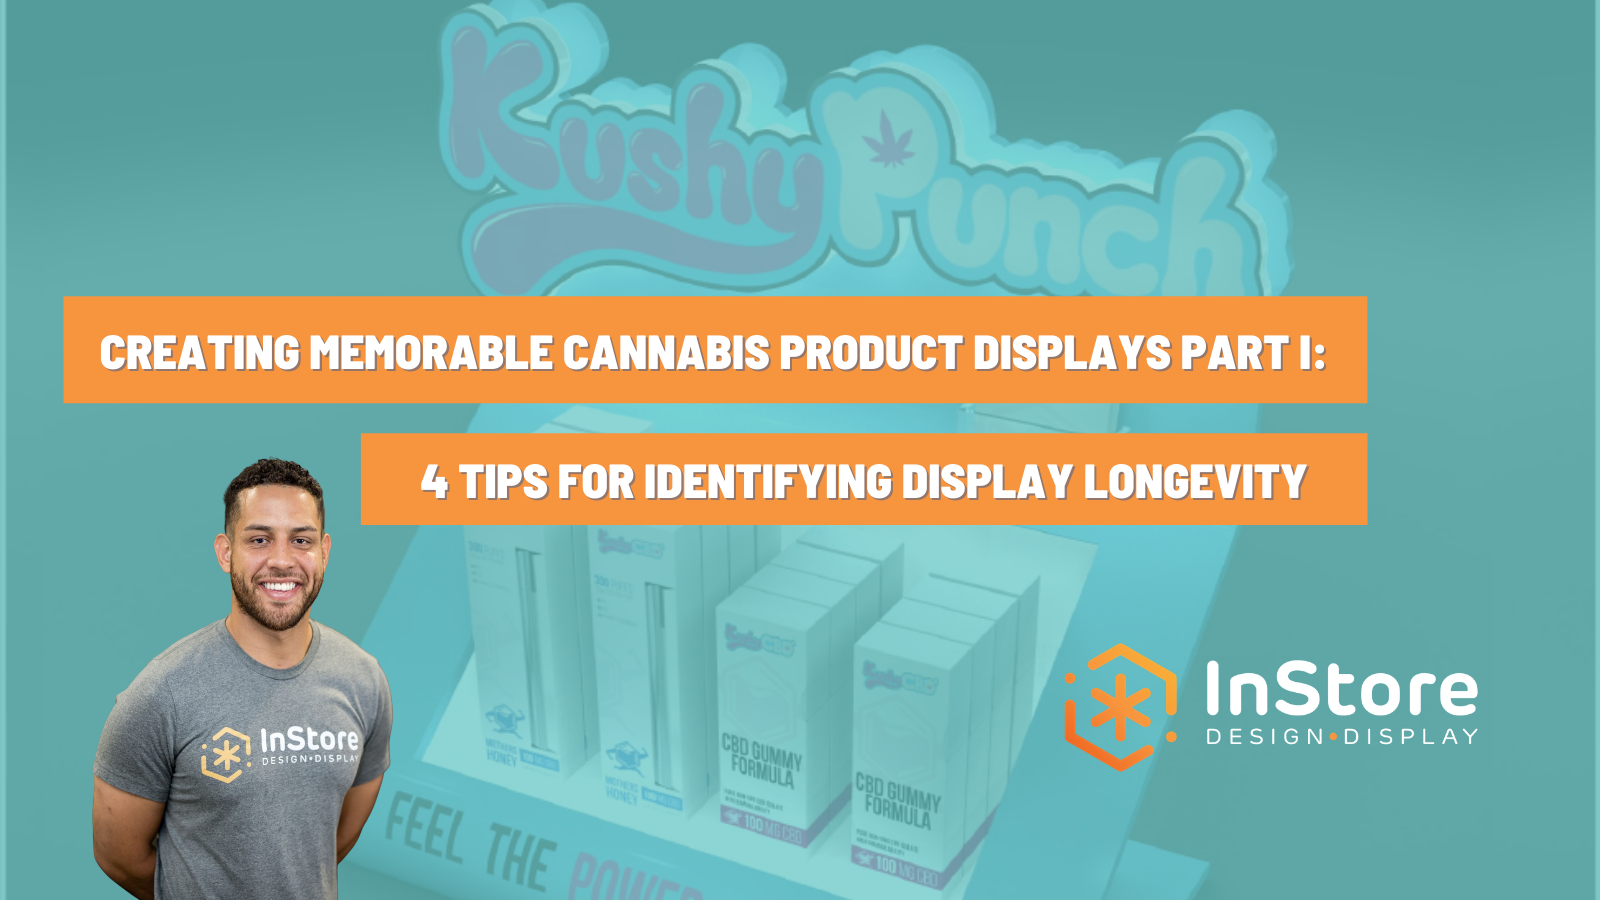 Creating Memorable Cannabis Product Displays: A Three Part Series